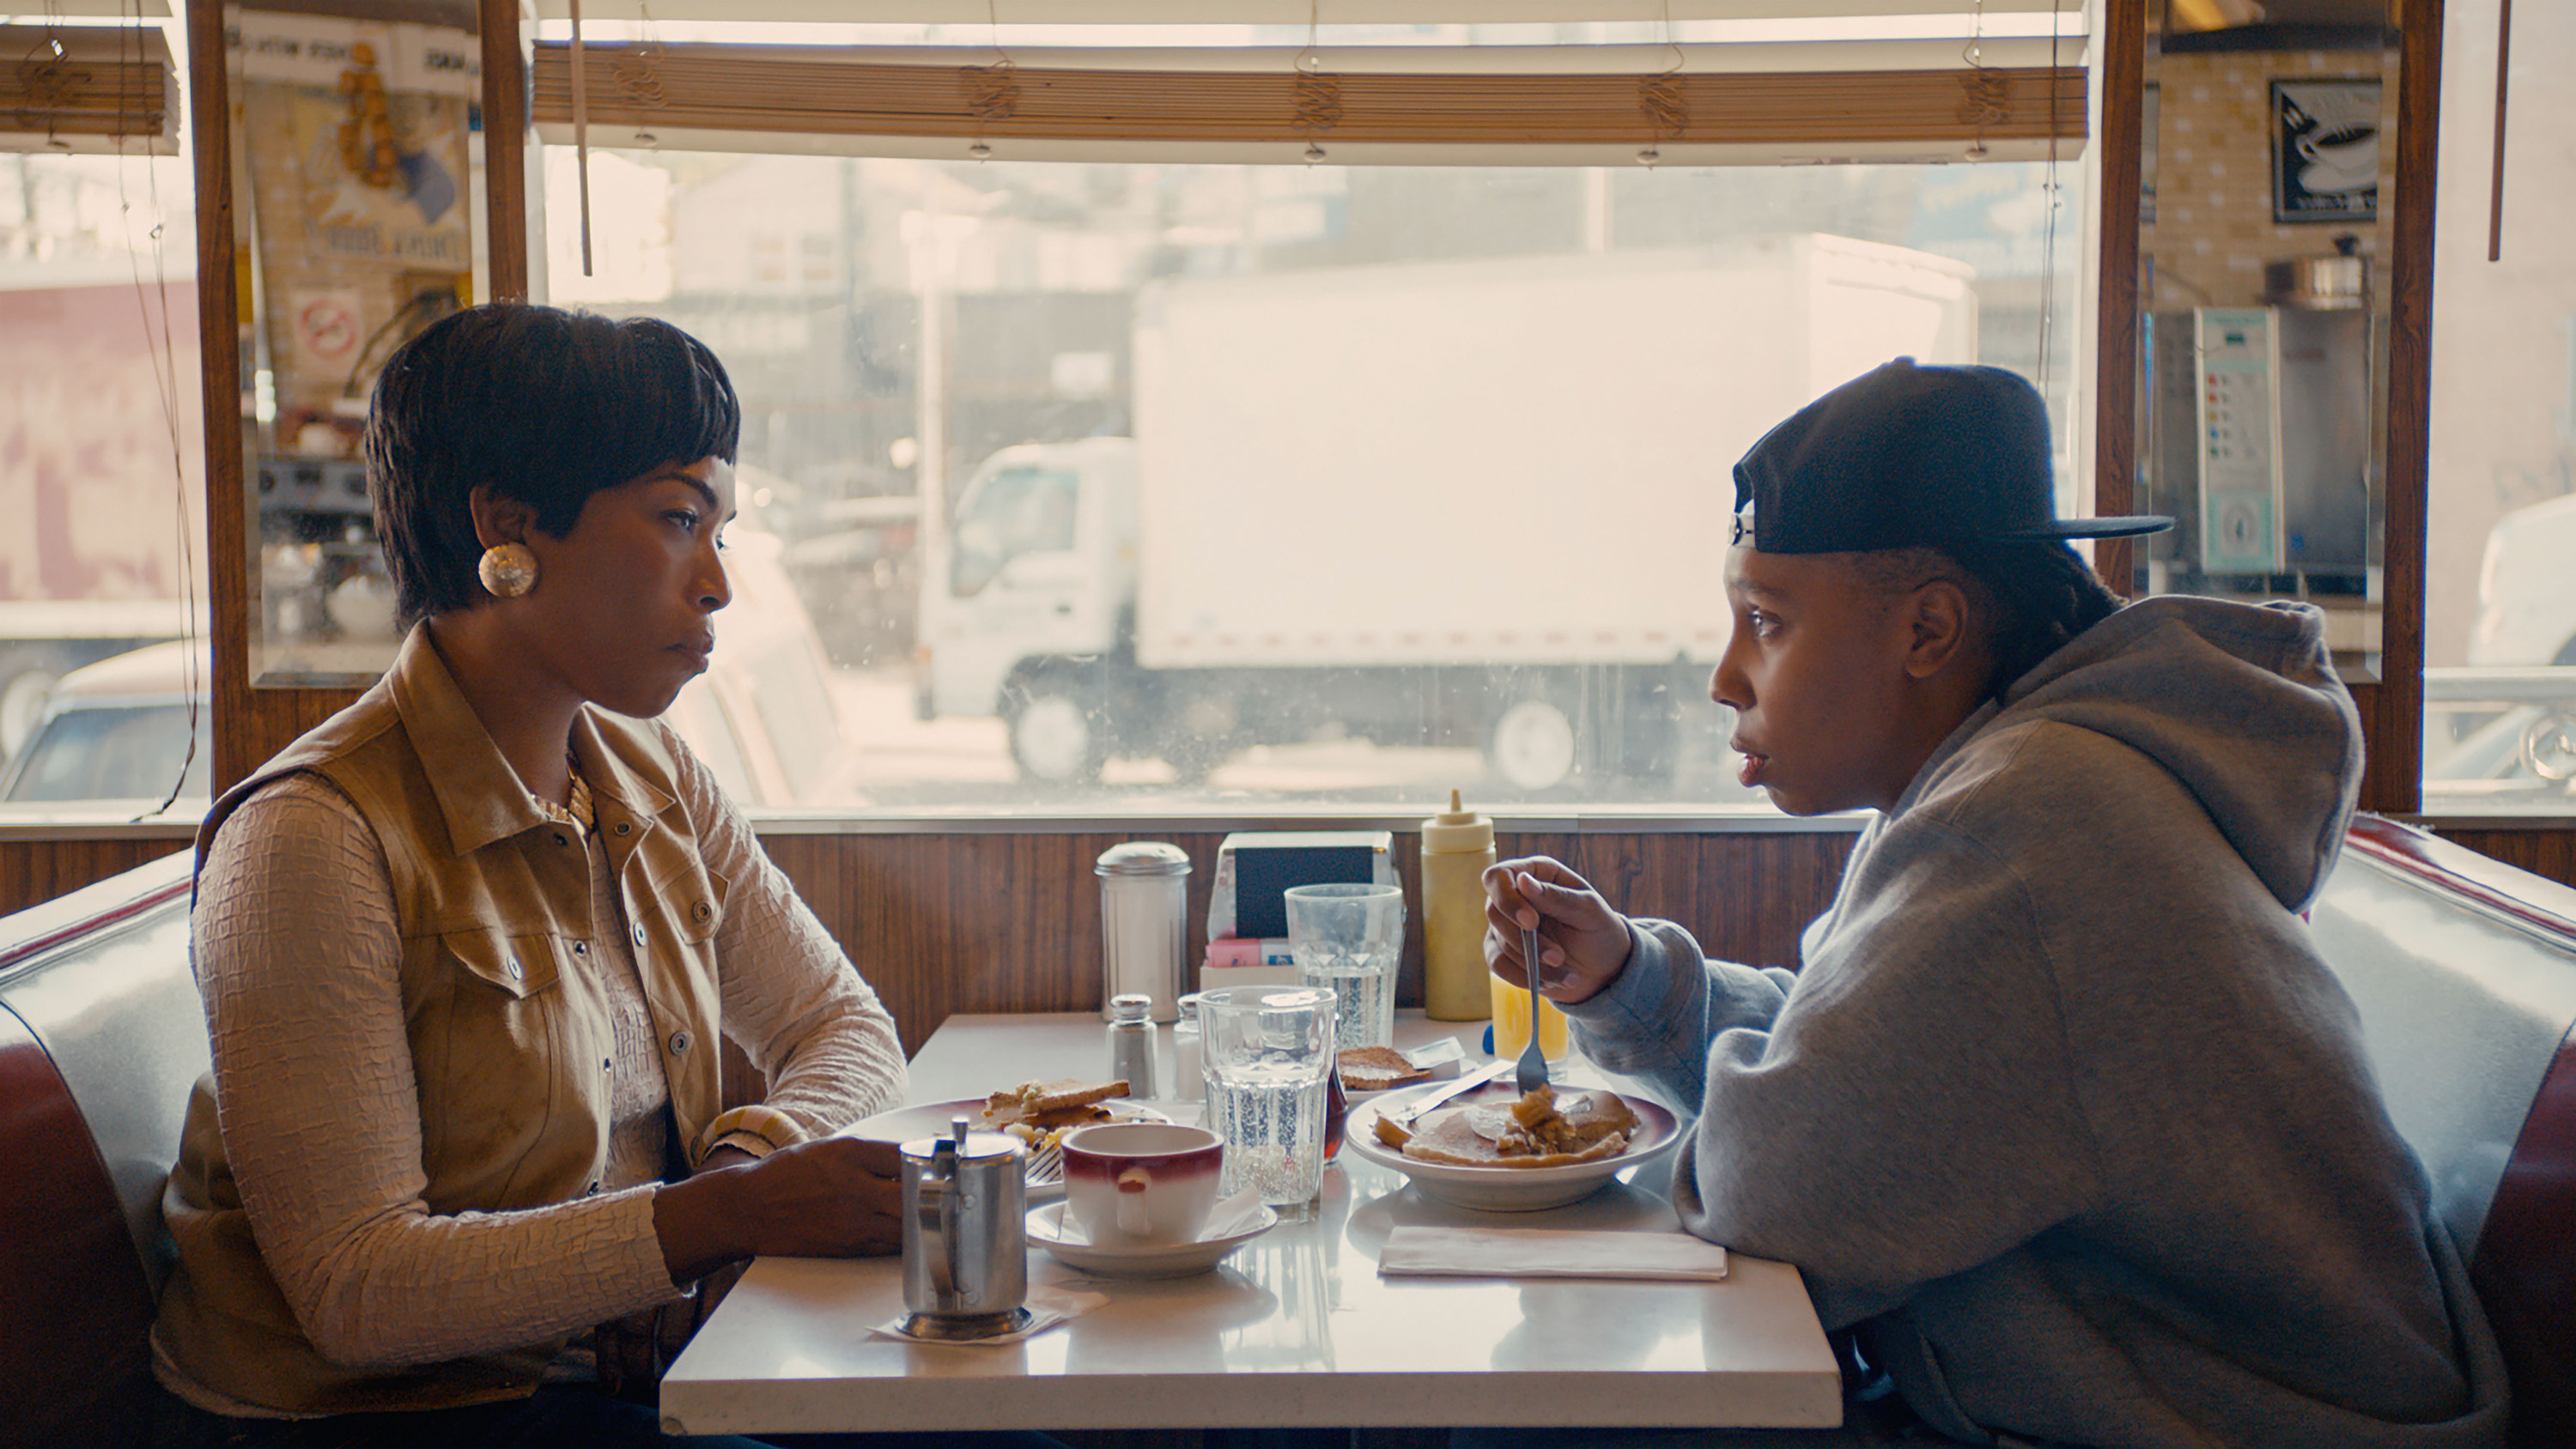 Angela Bassett and Lena Waithe sit across from each other in a diner